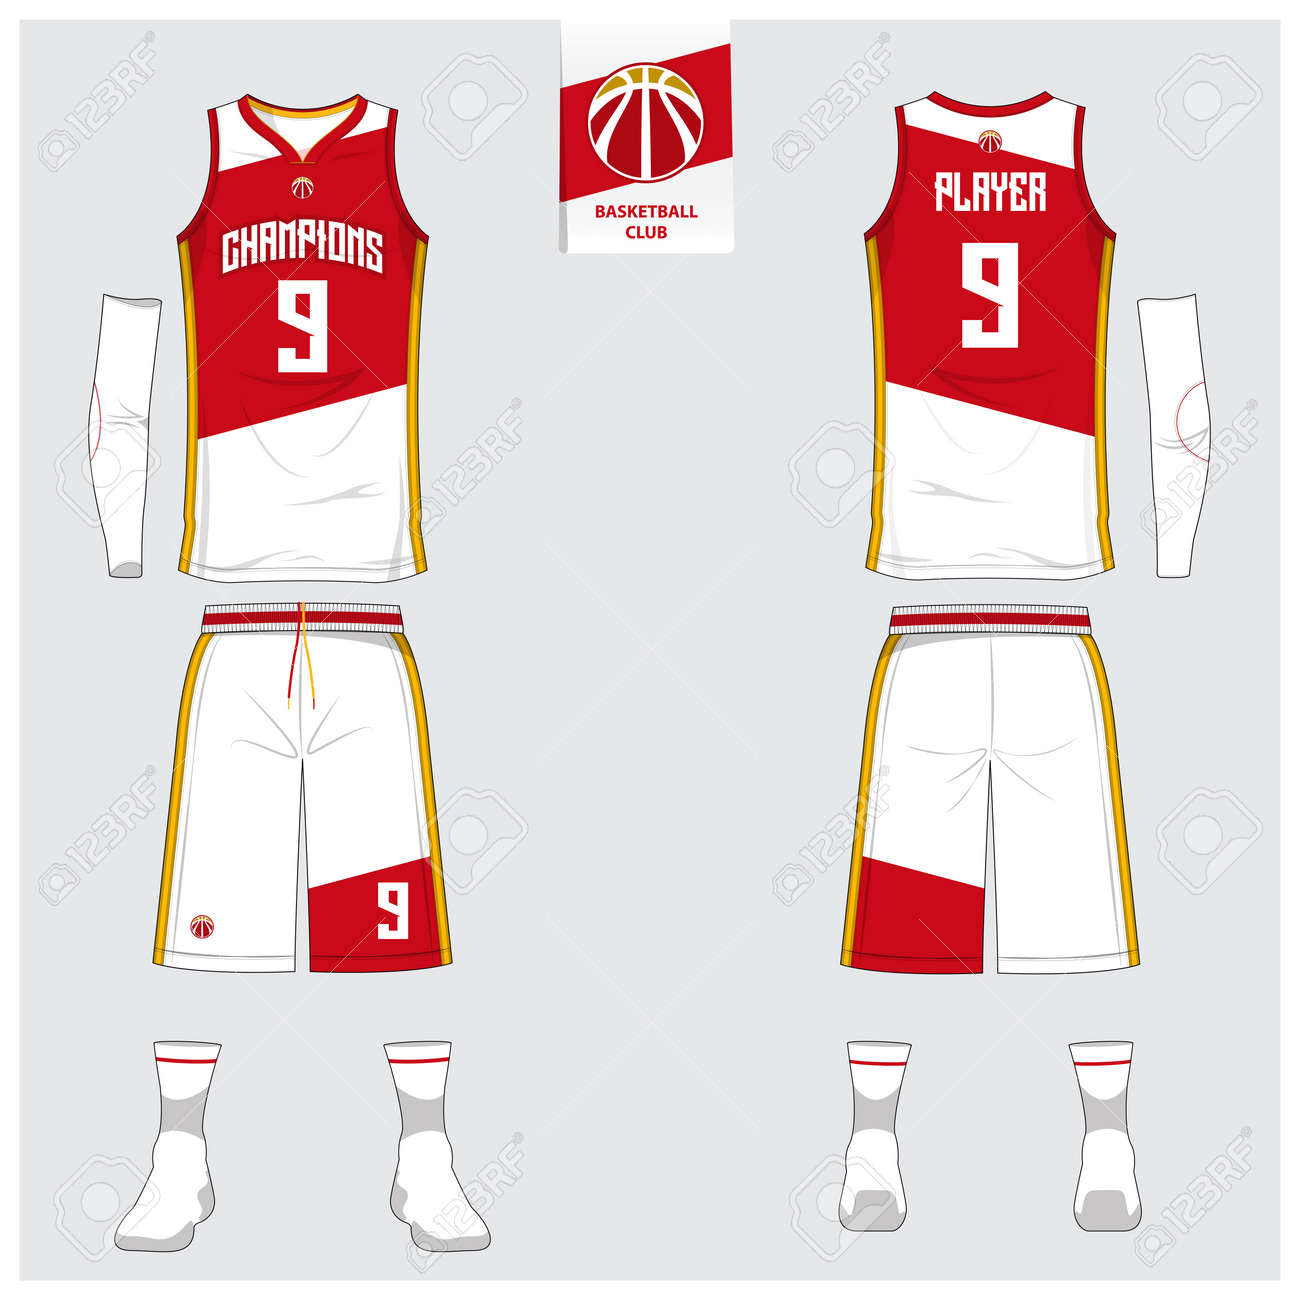 76859f57043f Basketball Jersey Or Sport Uniform Design Royalty Free Cliparts ...